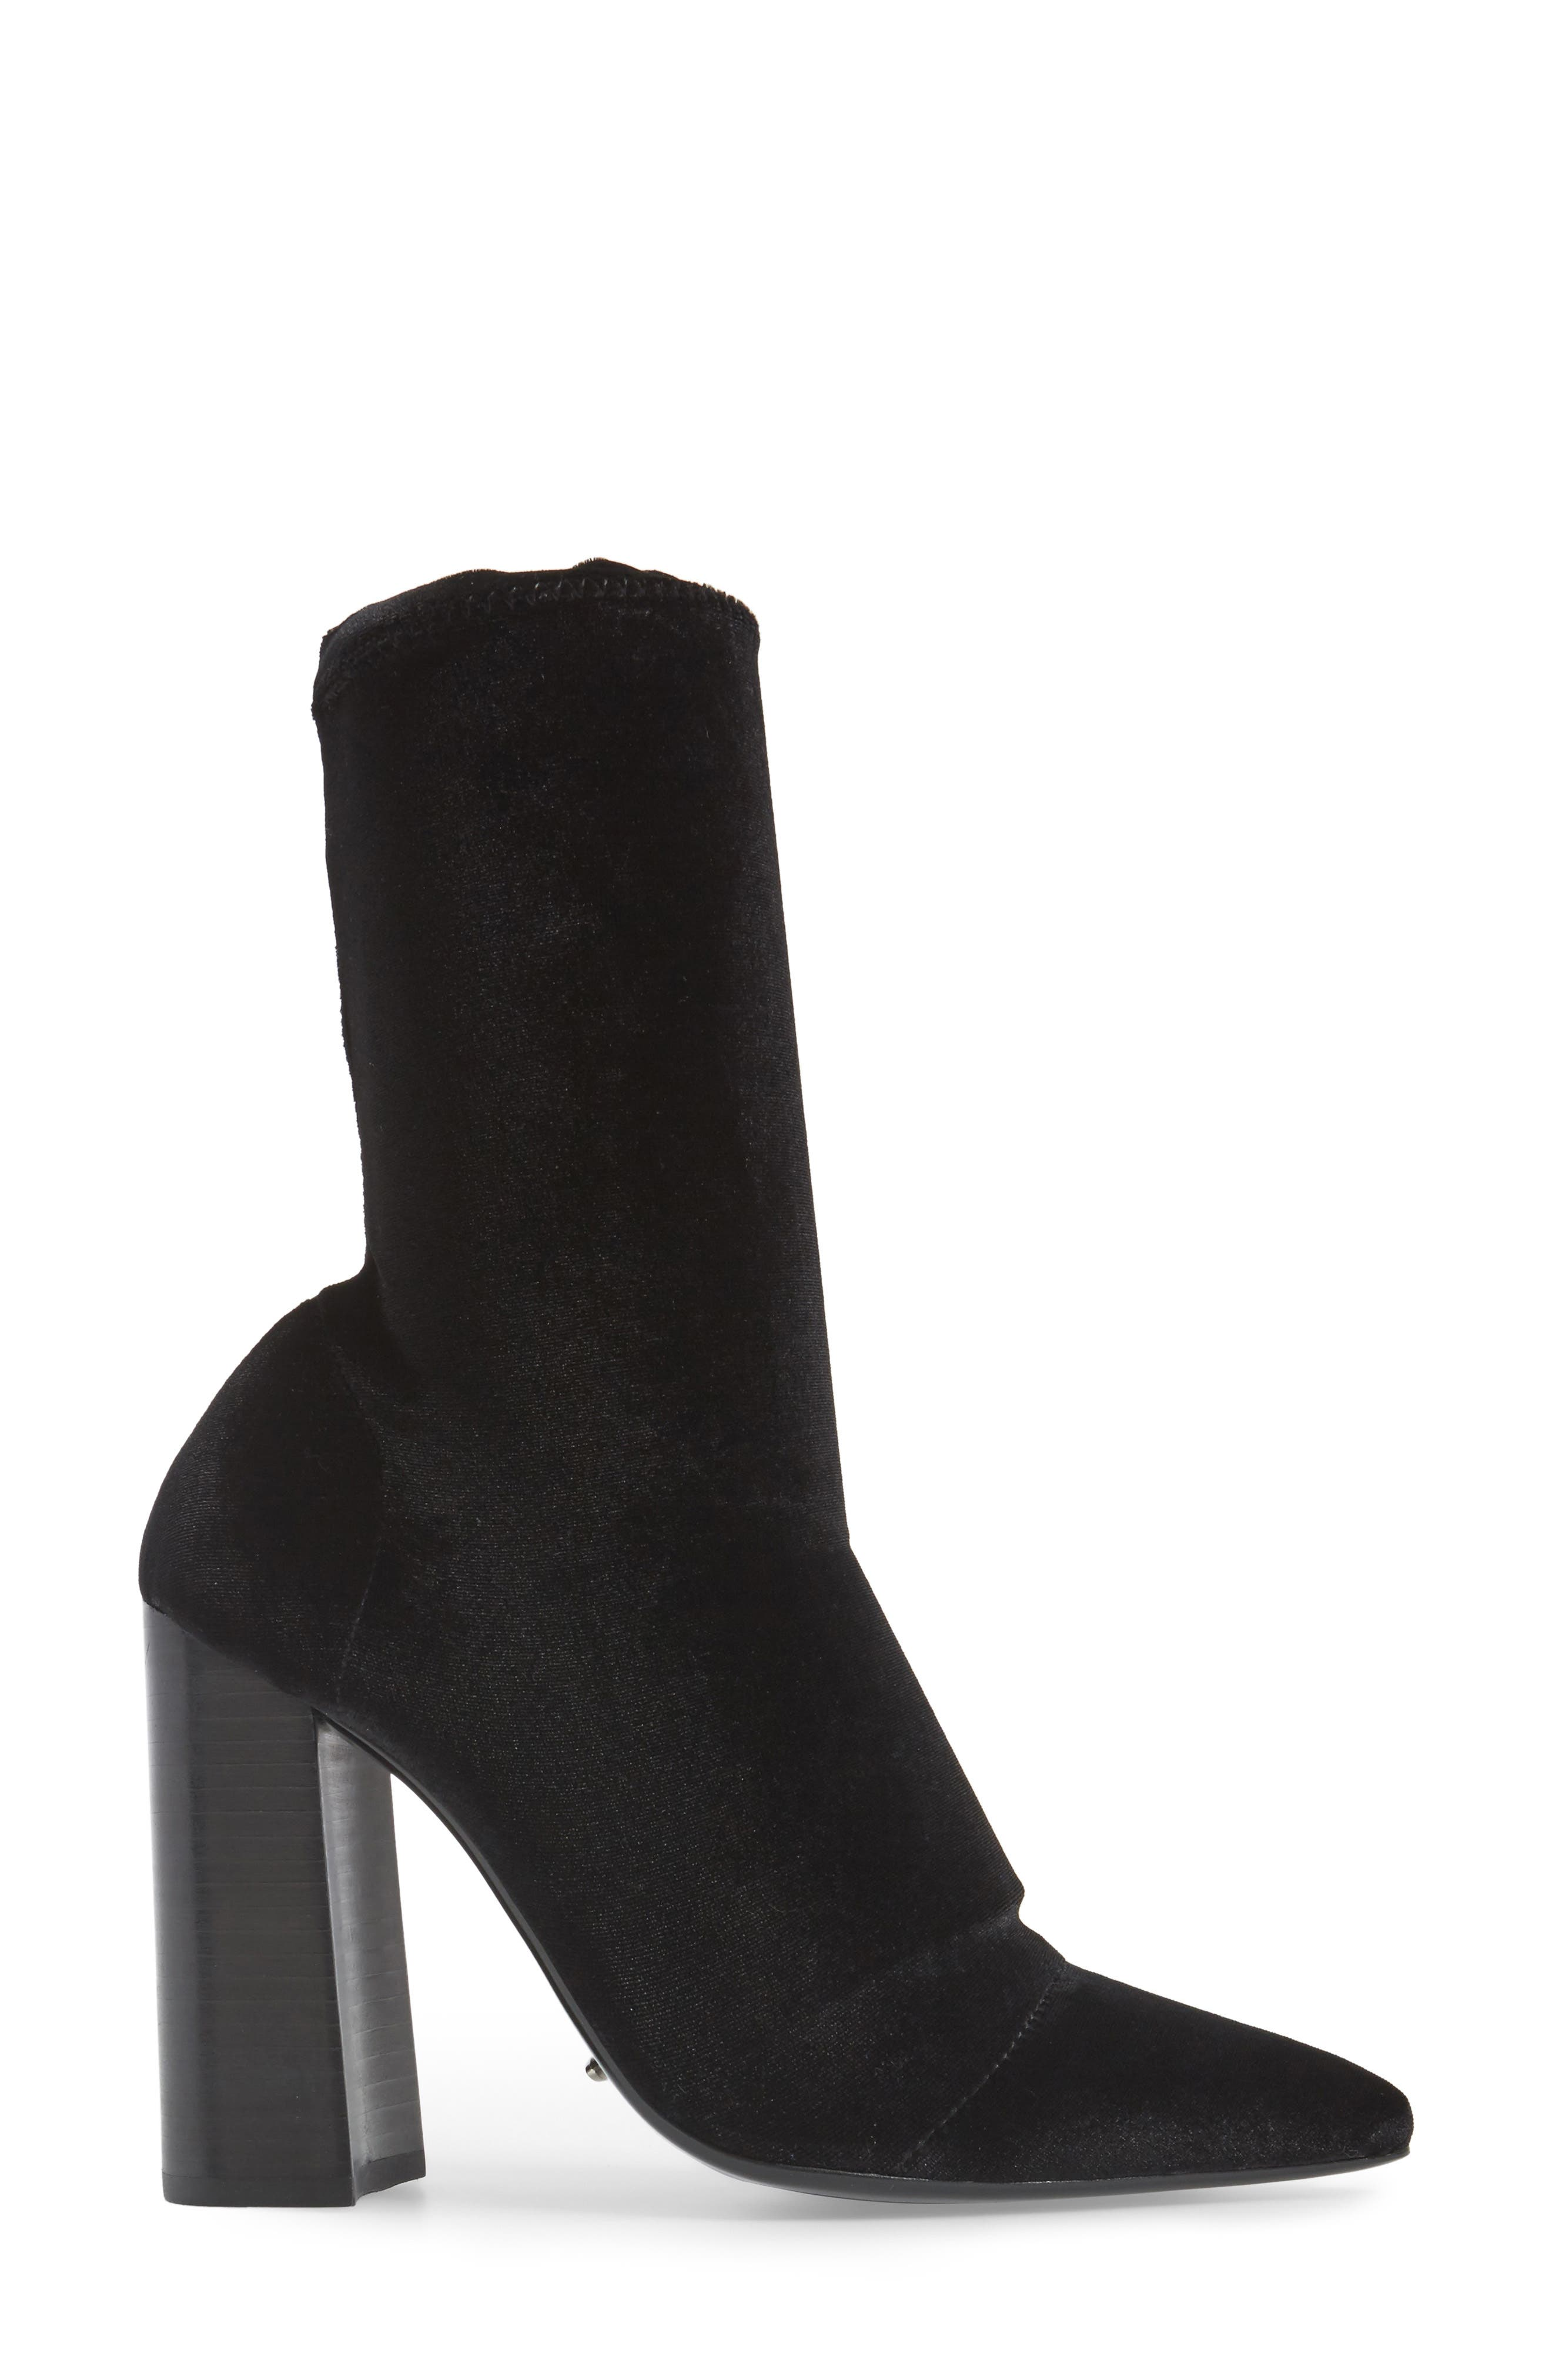 Diddy Velvet Bootie,                             Alternate thumbnail 3, color,                             BLACK FABRIC